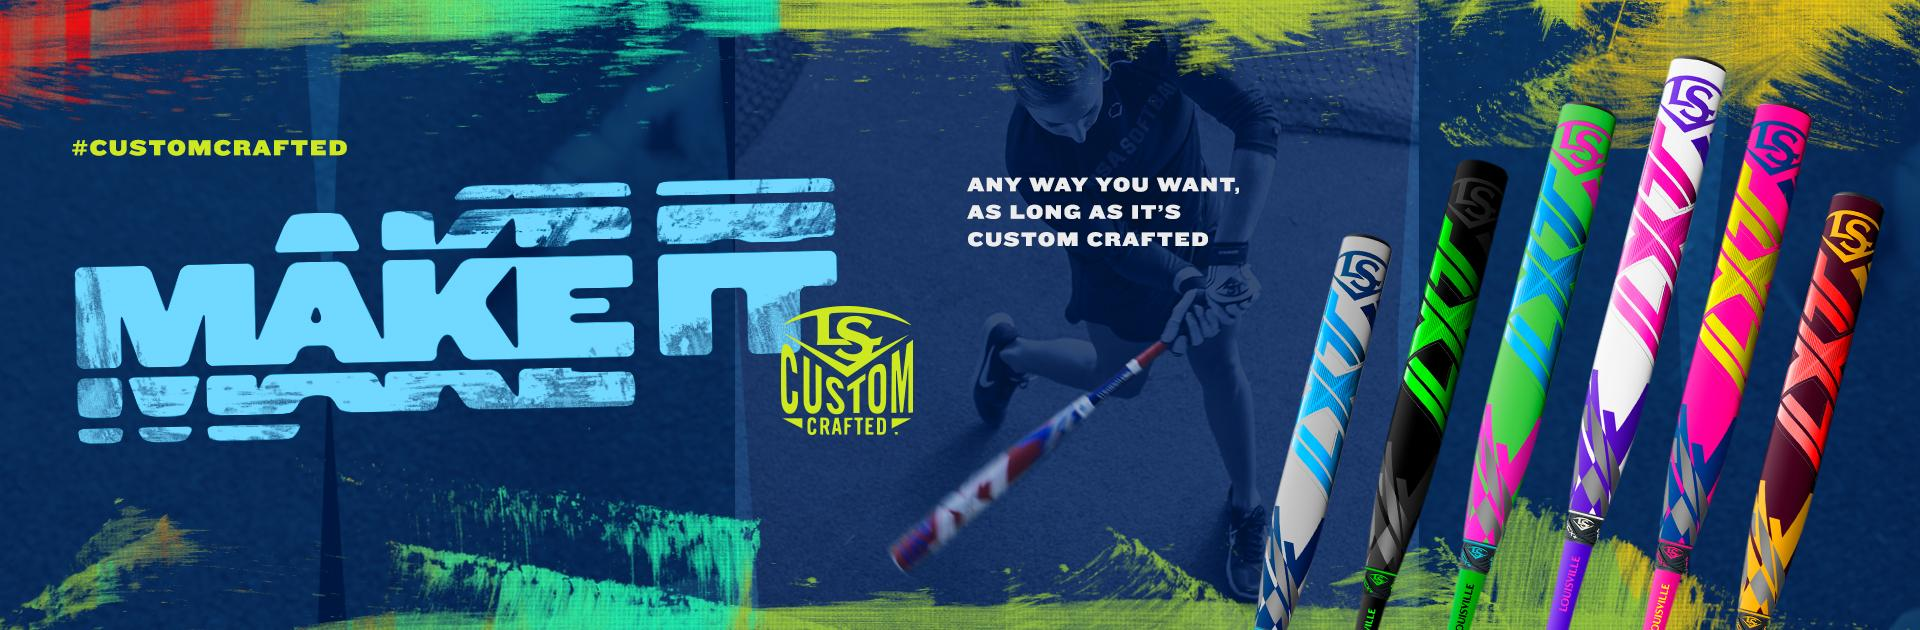 Any way you want it, as long as its custom crafted. 2021 Slugger Custom Fastpitch bats Now Available.